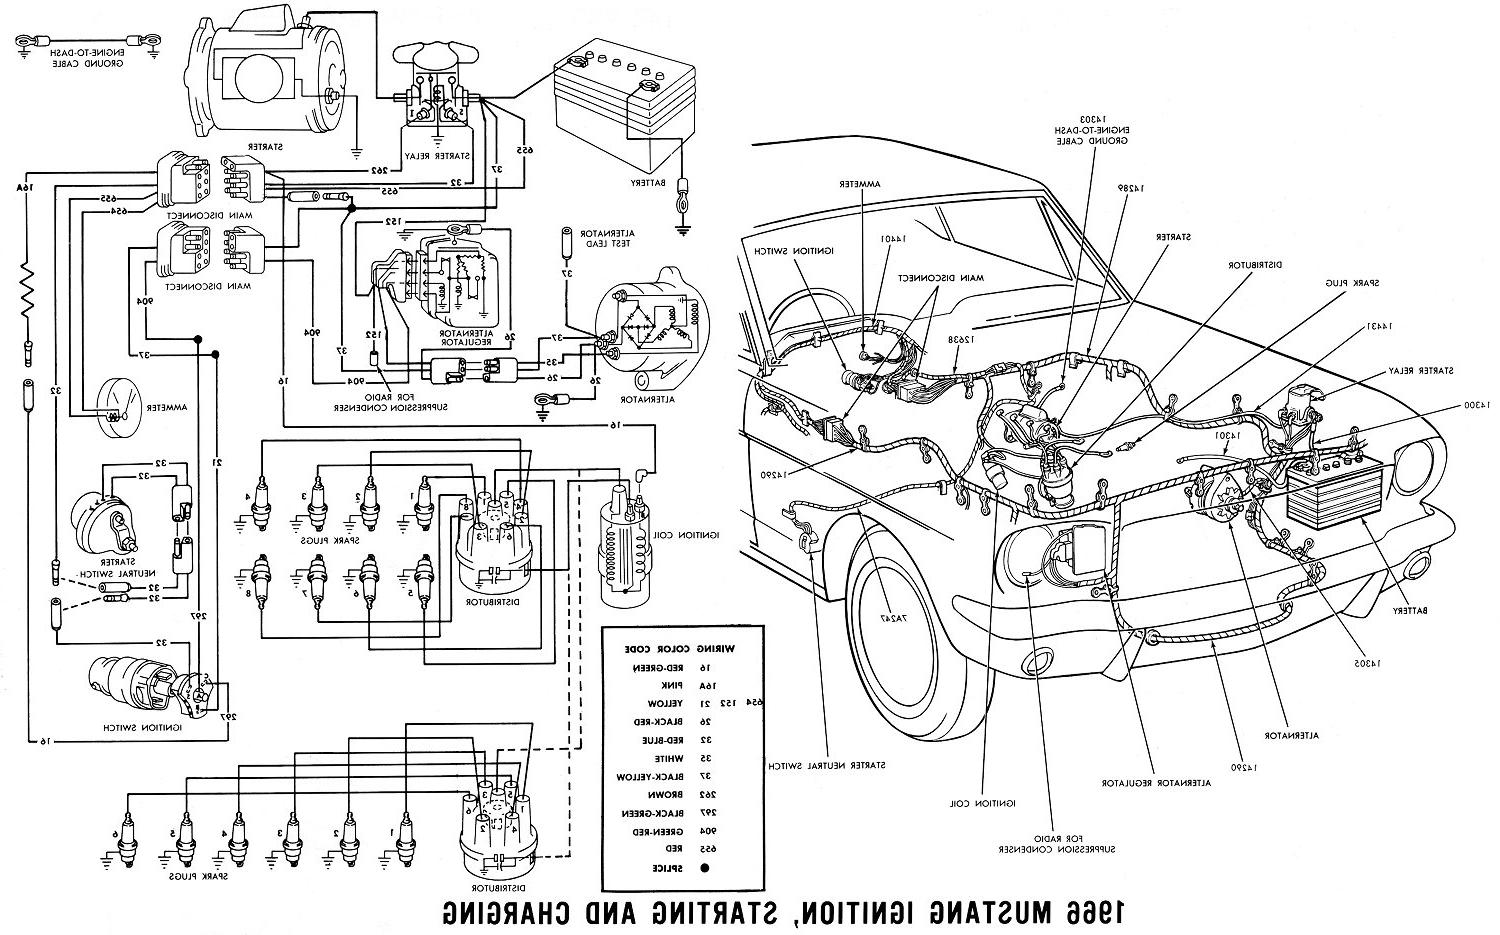 1966 ford mustang ignition wiring diagram pass amp seymour switches heeyoung 39s blog coupe vintage